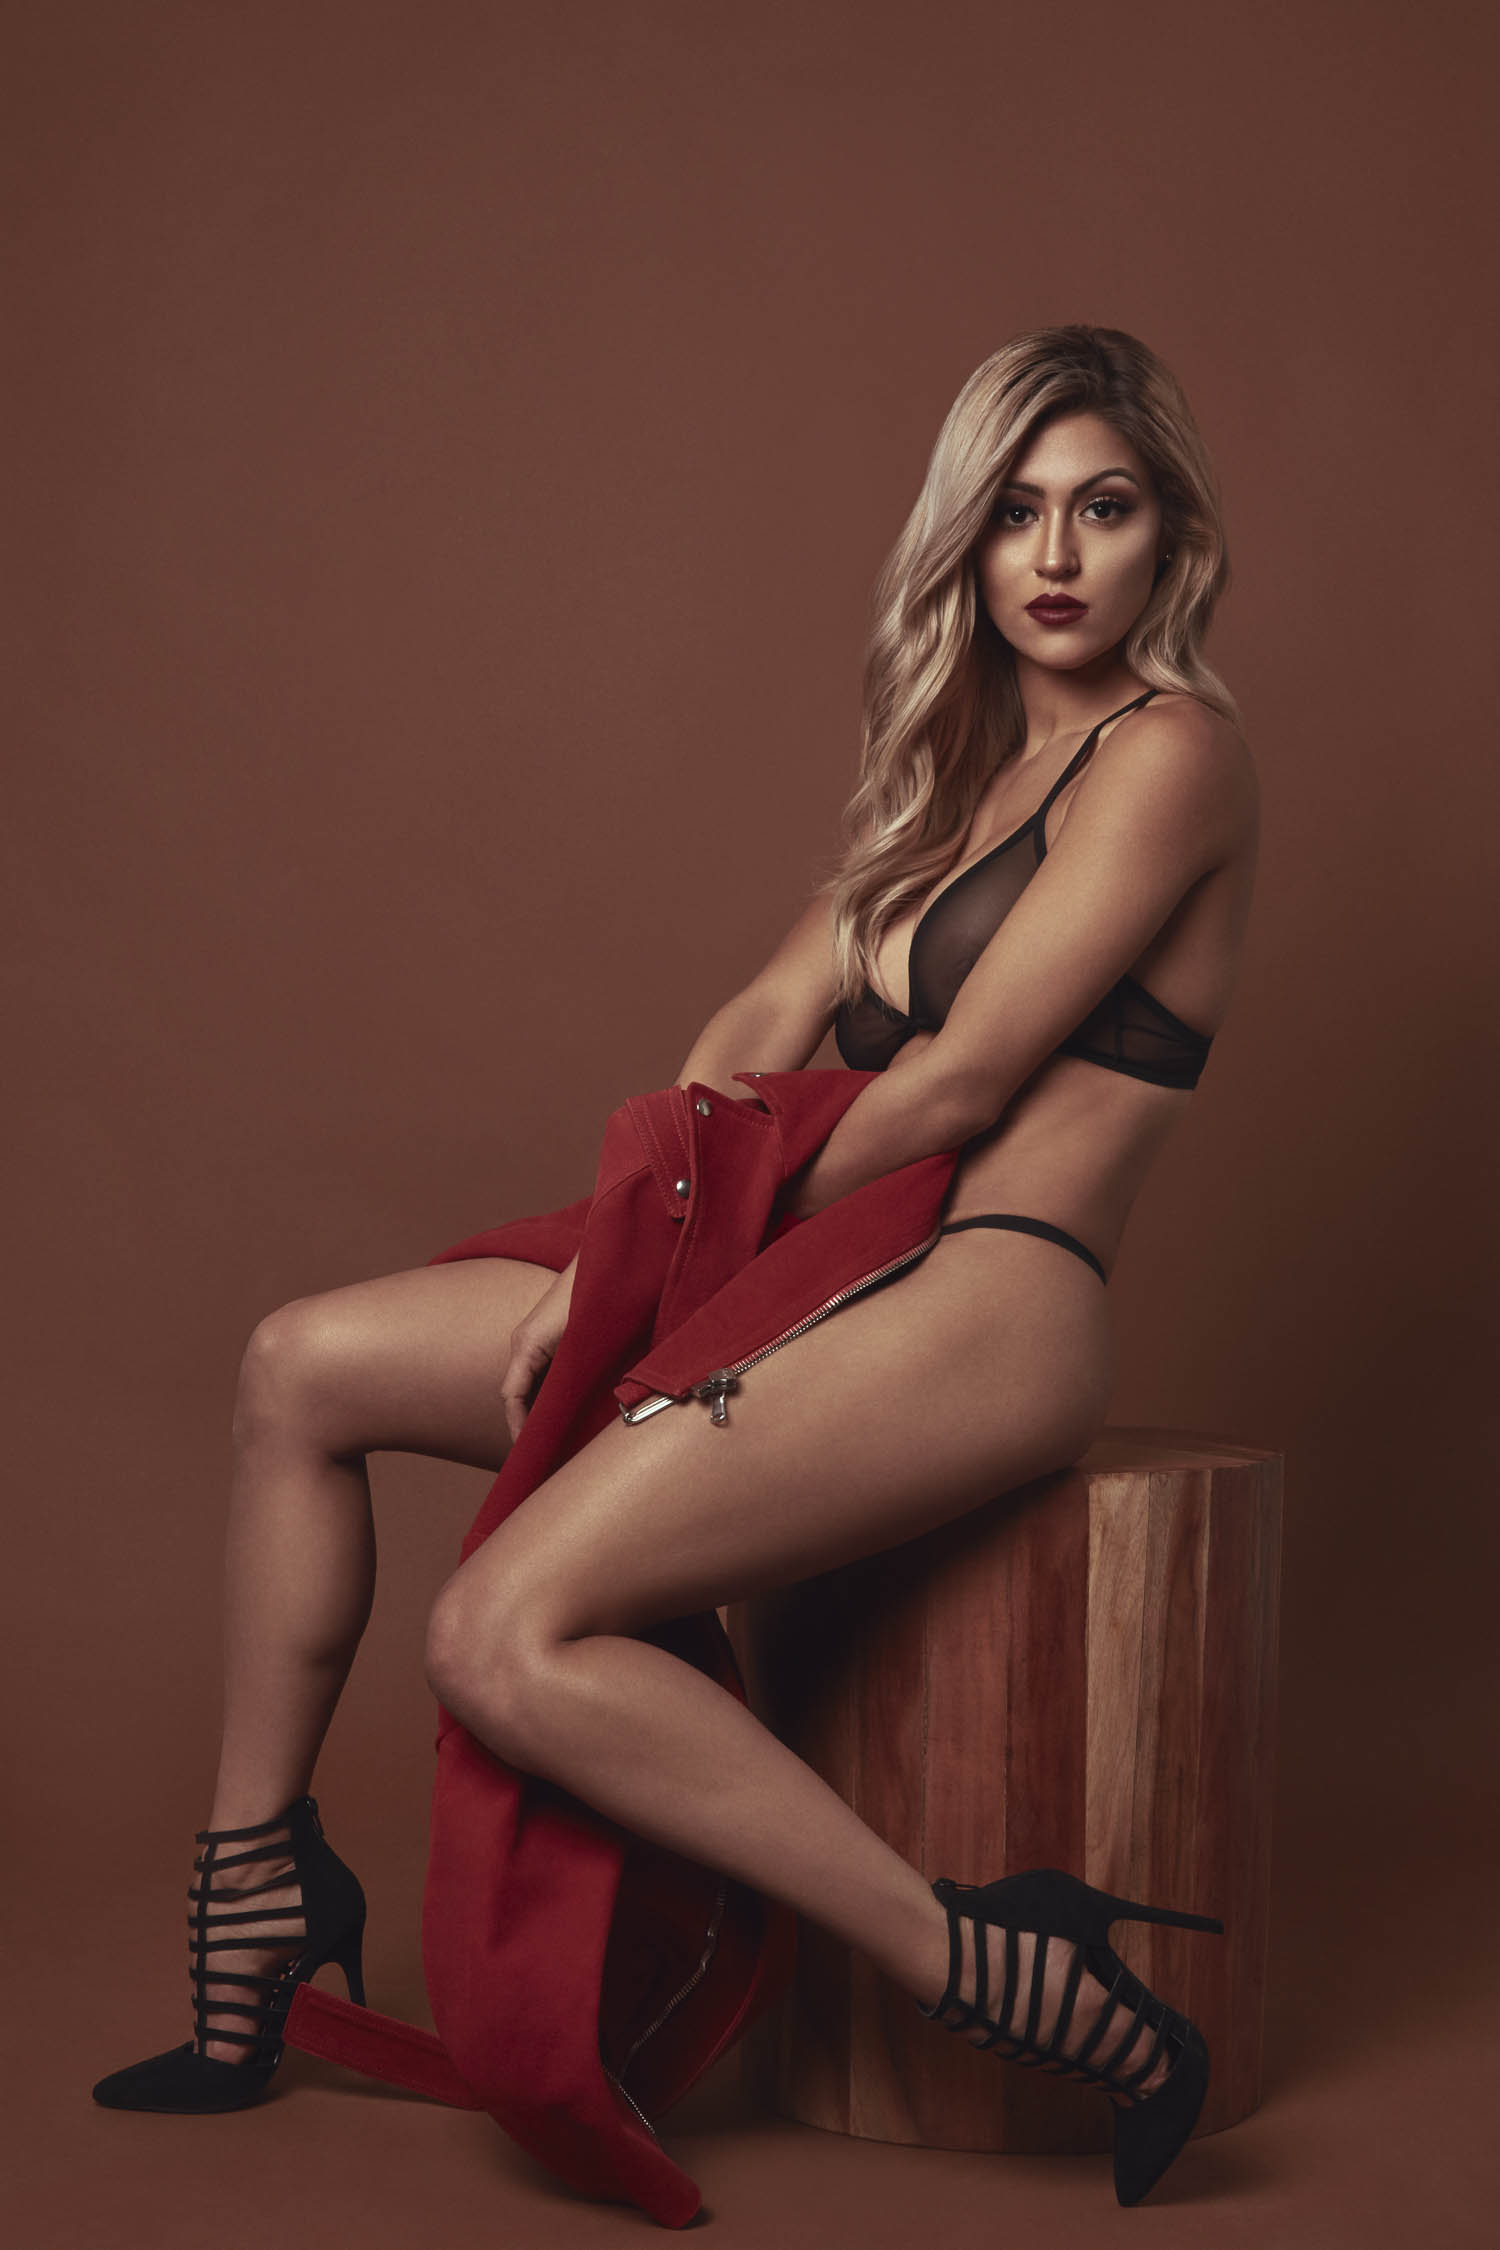 Blonde woman sitting on a wooden stool with red coat and black stilettos